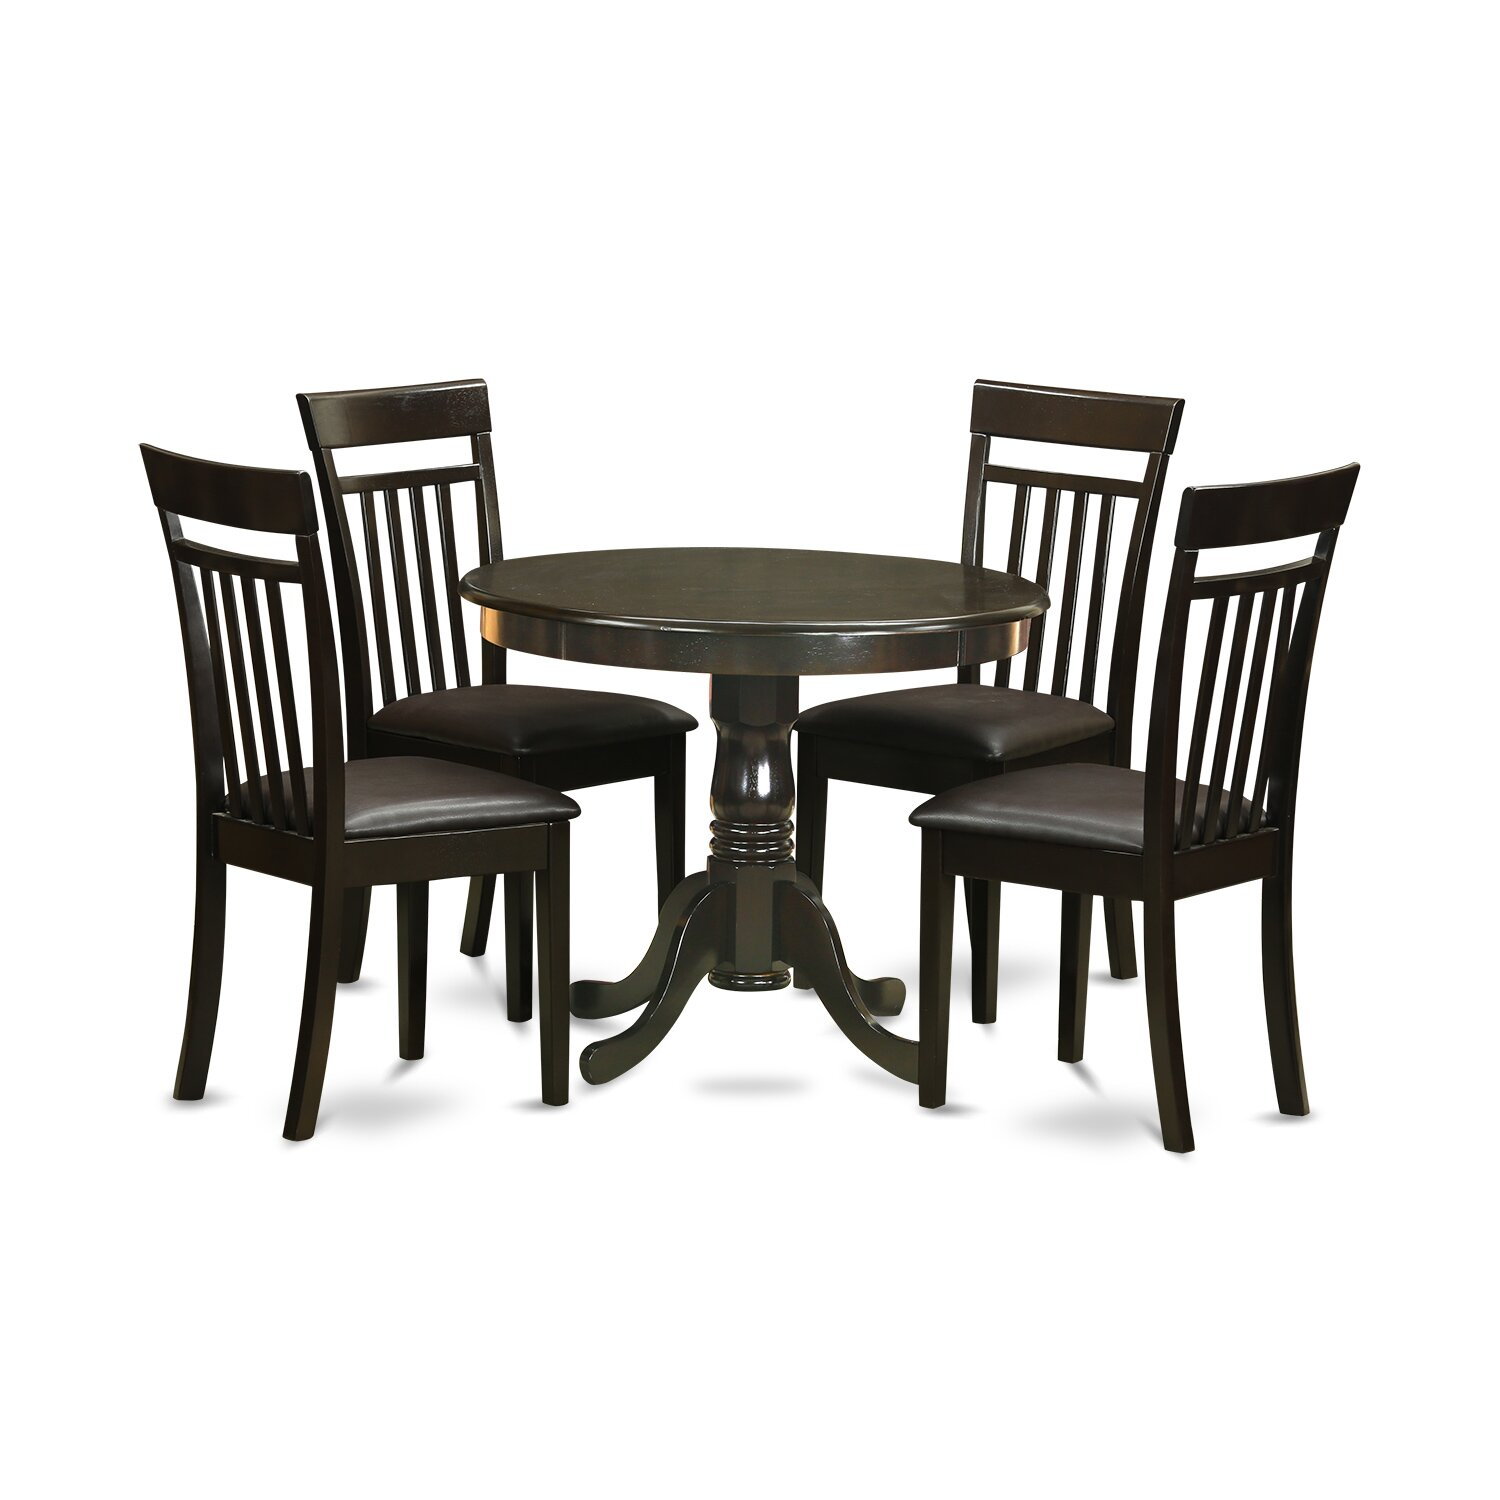 East west 5 piece dining set reviews wayfair for 5 chair dining table